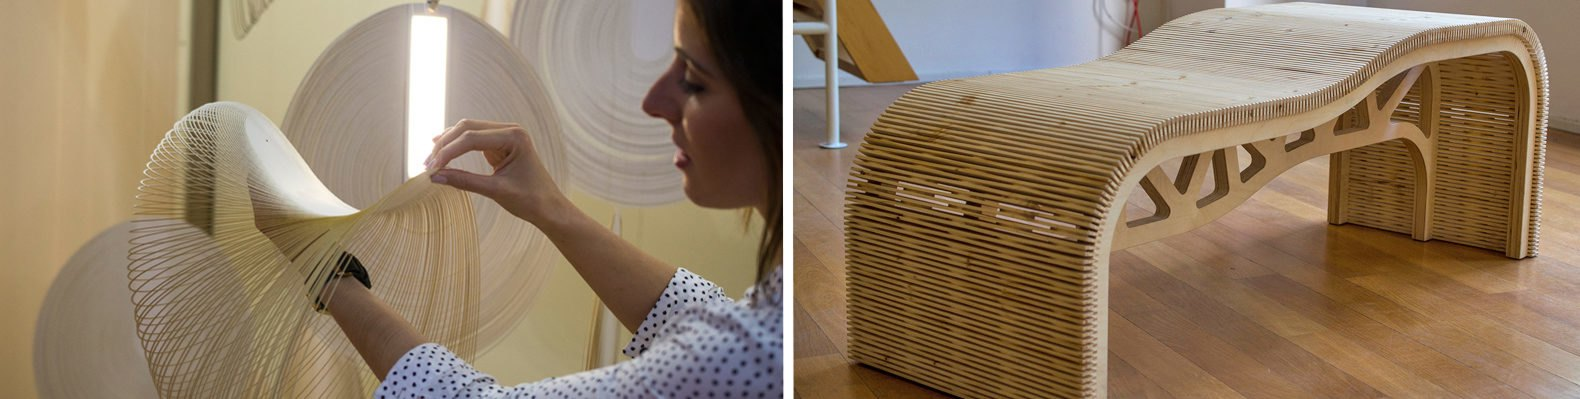 On the left, a woman touches the Sila lamp. On the right, a curvy wooden bench.